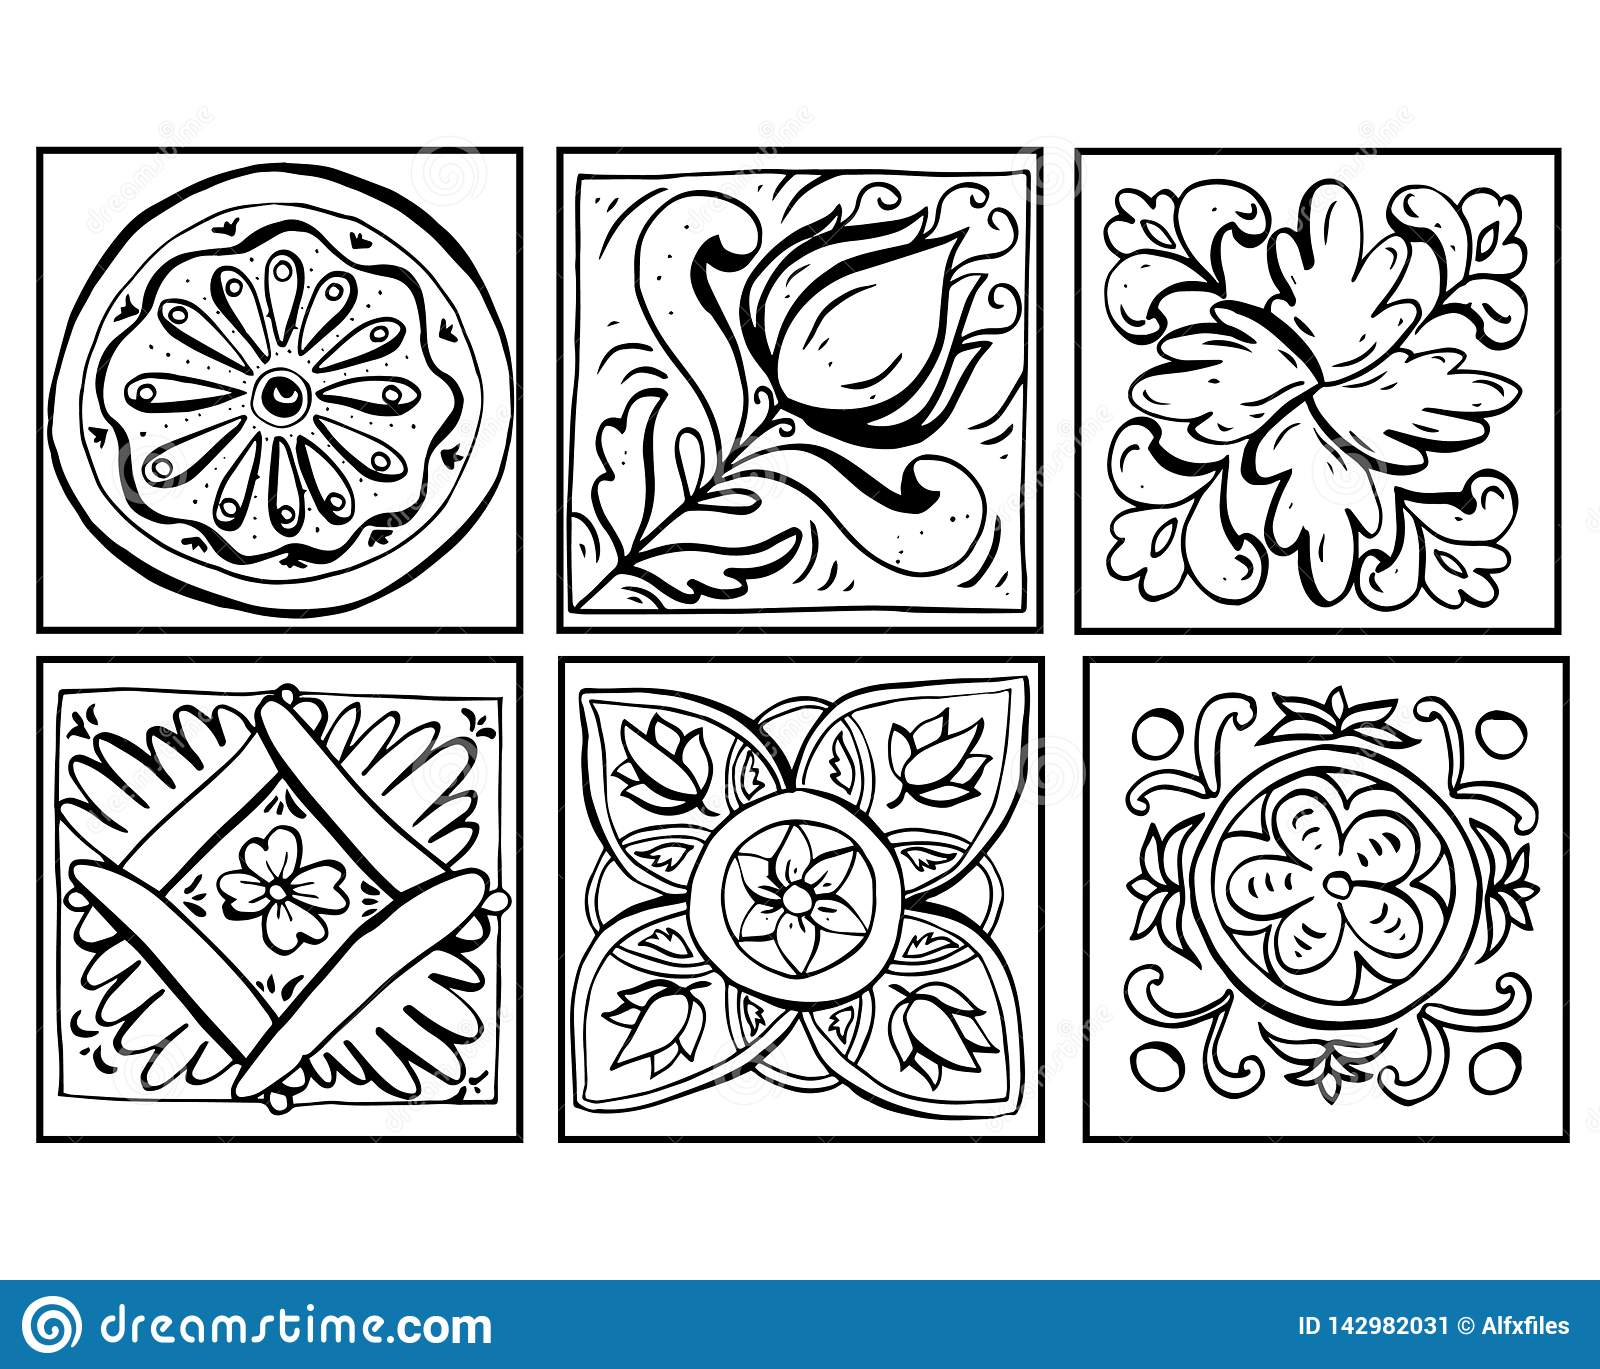 Vector illustration of Sicilian pottery doodles set black and white. Ornaments isolated on white background. Decor